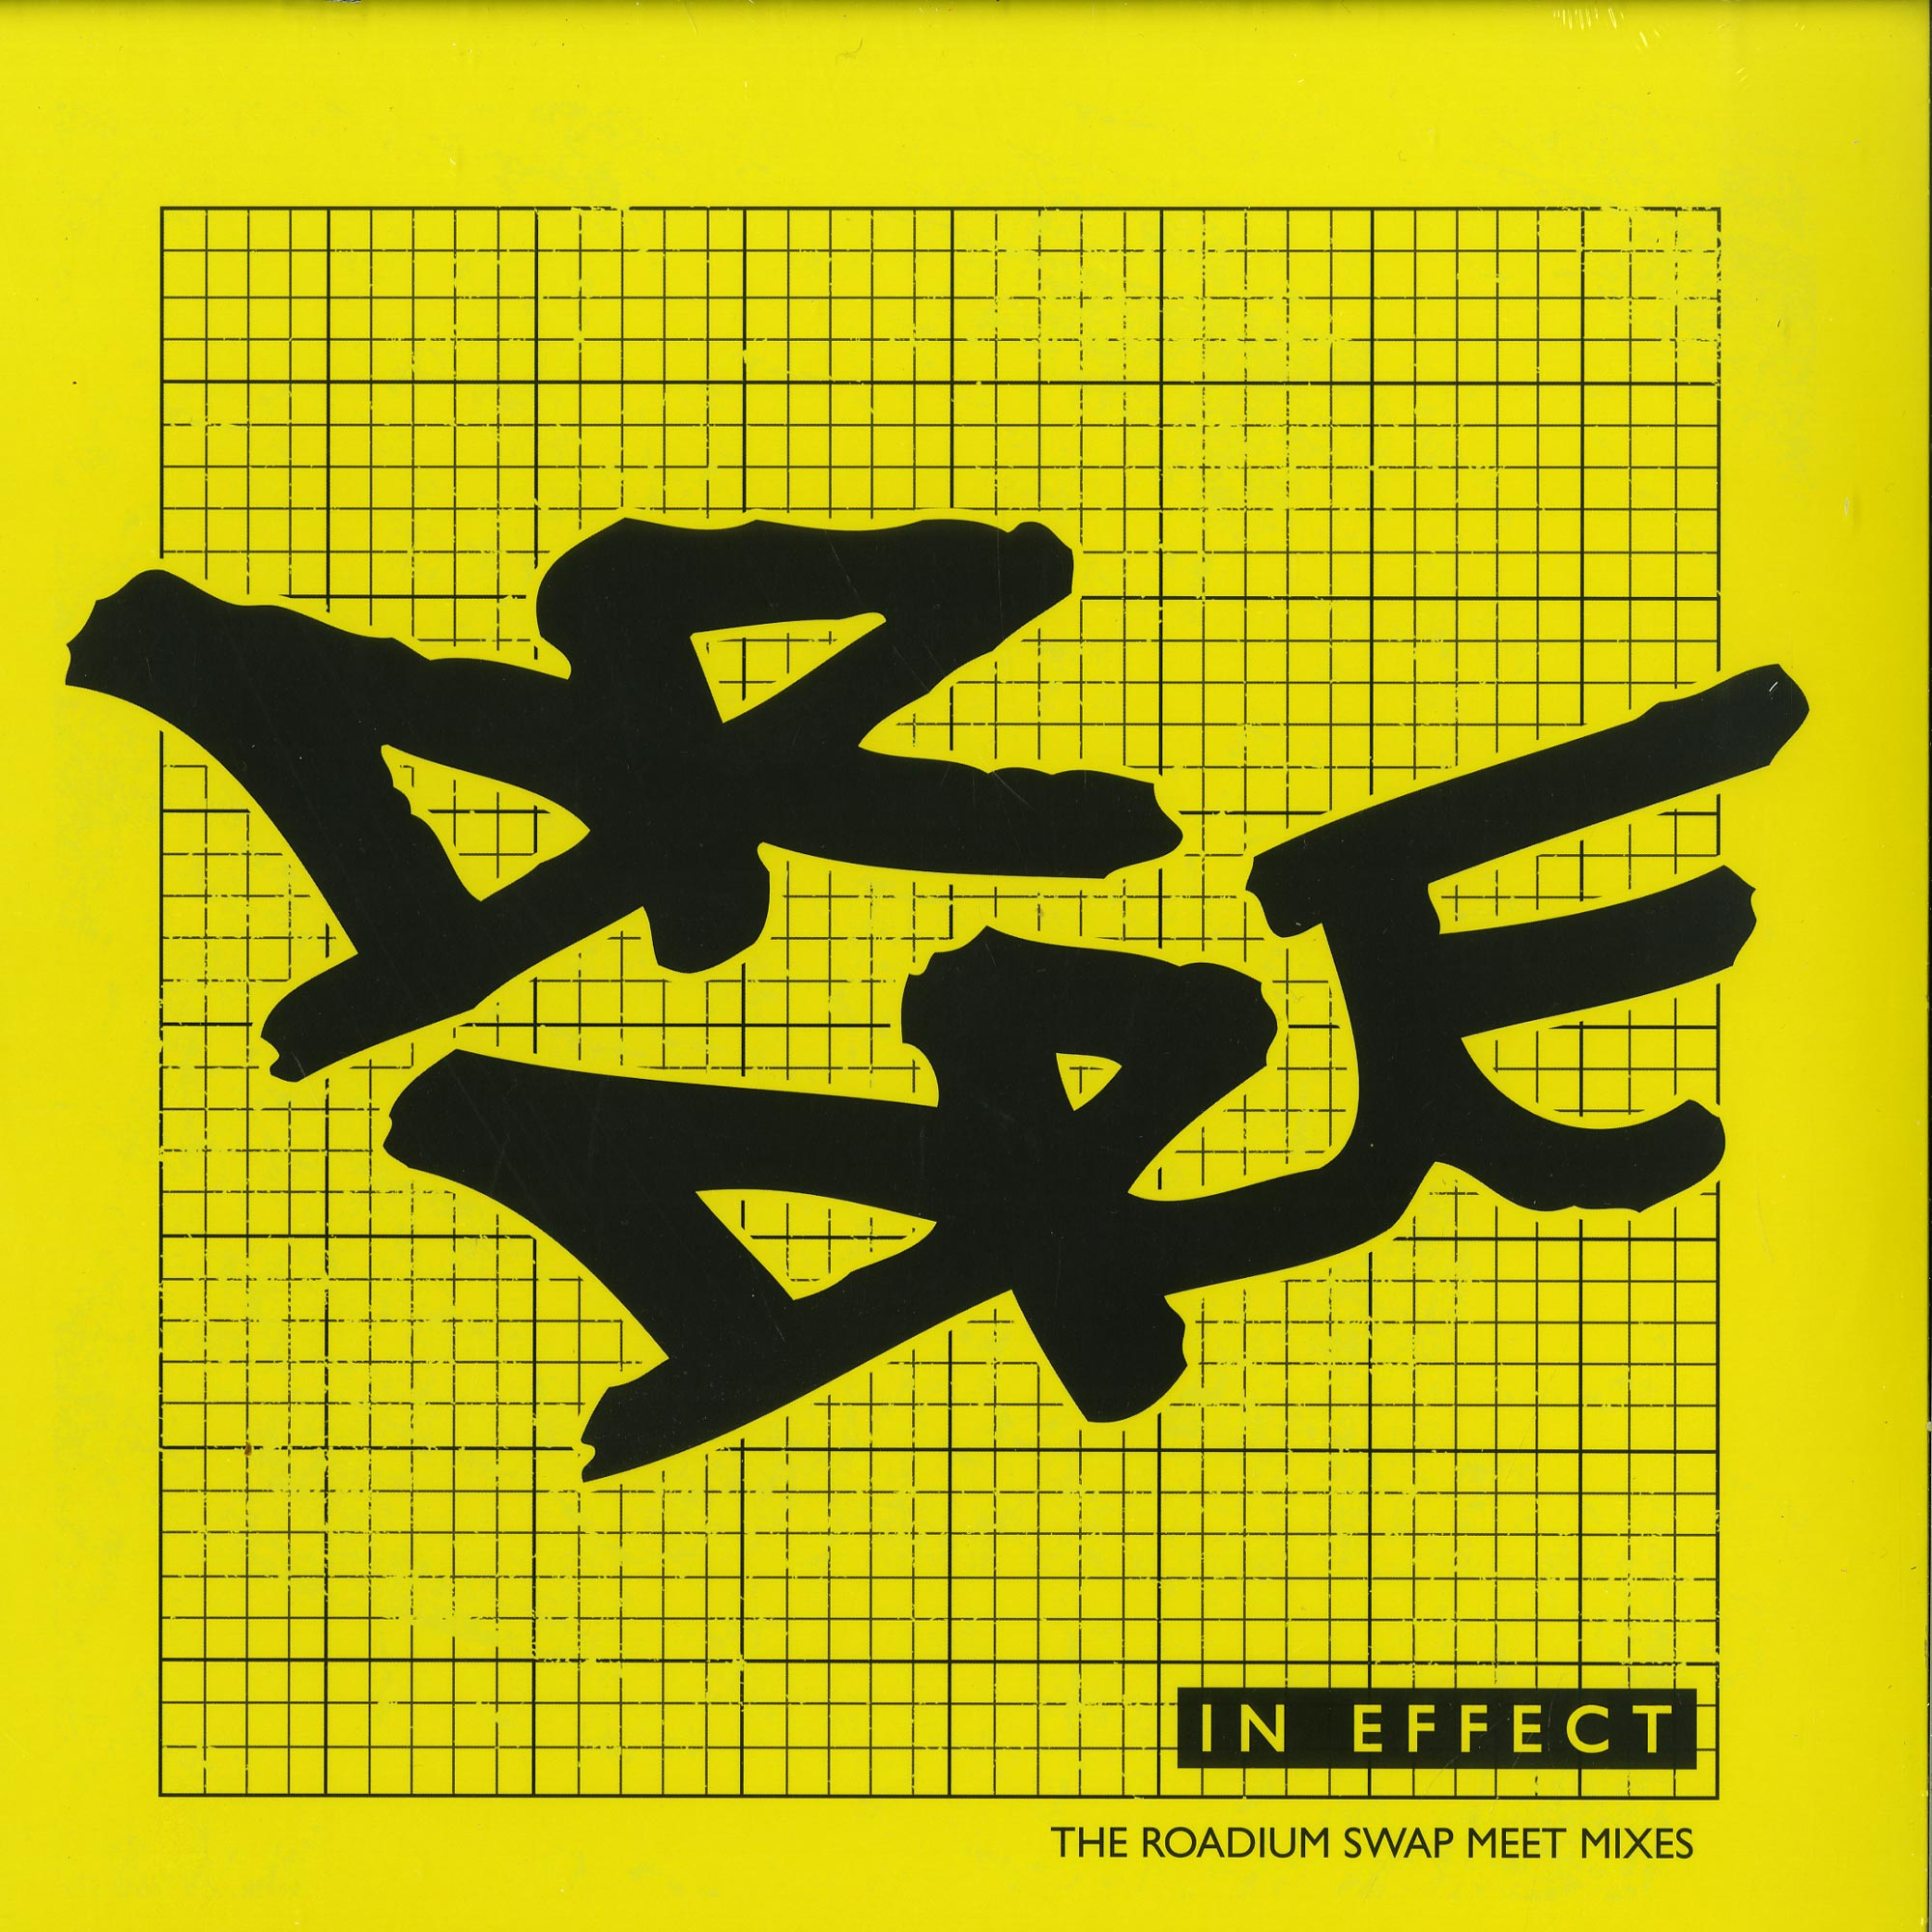 Dr. Dre - IN EFFECT